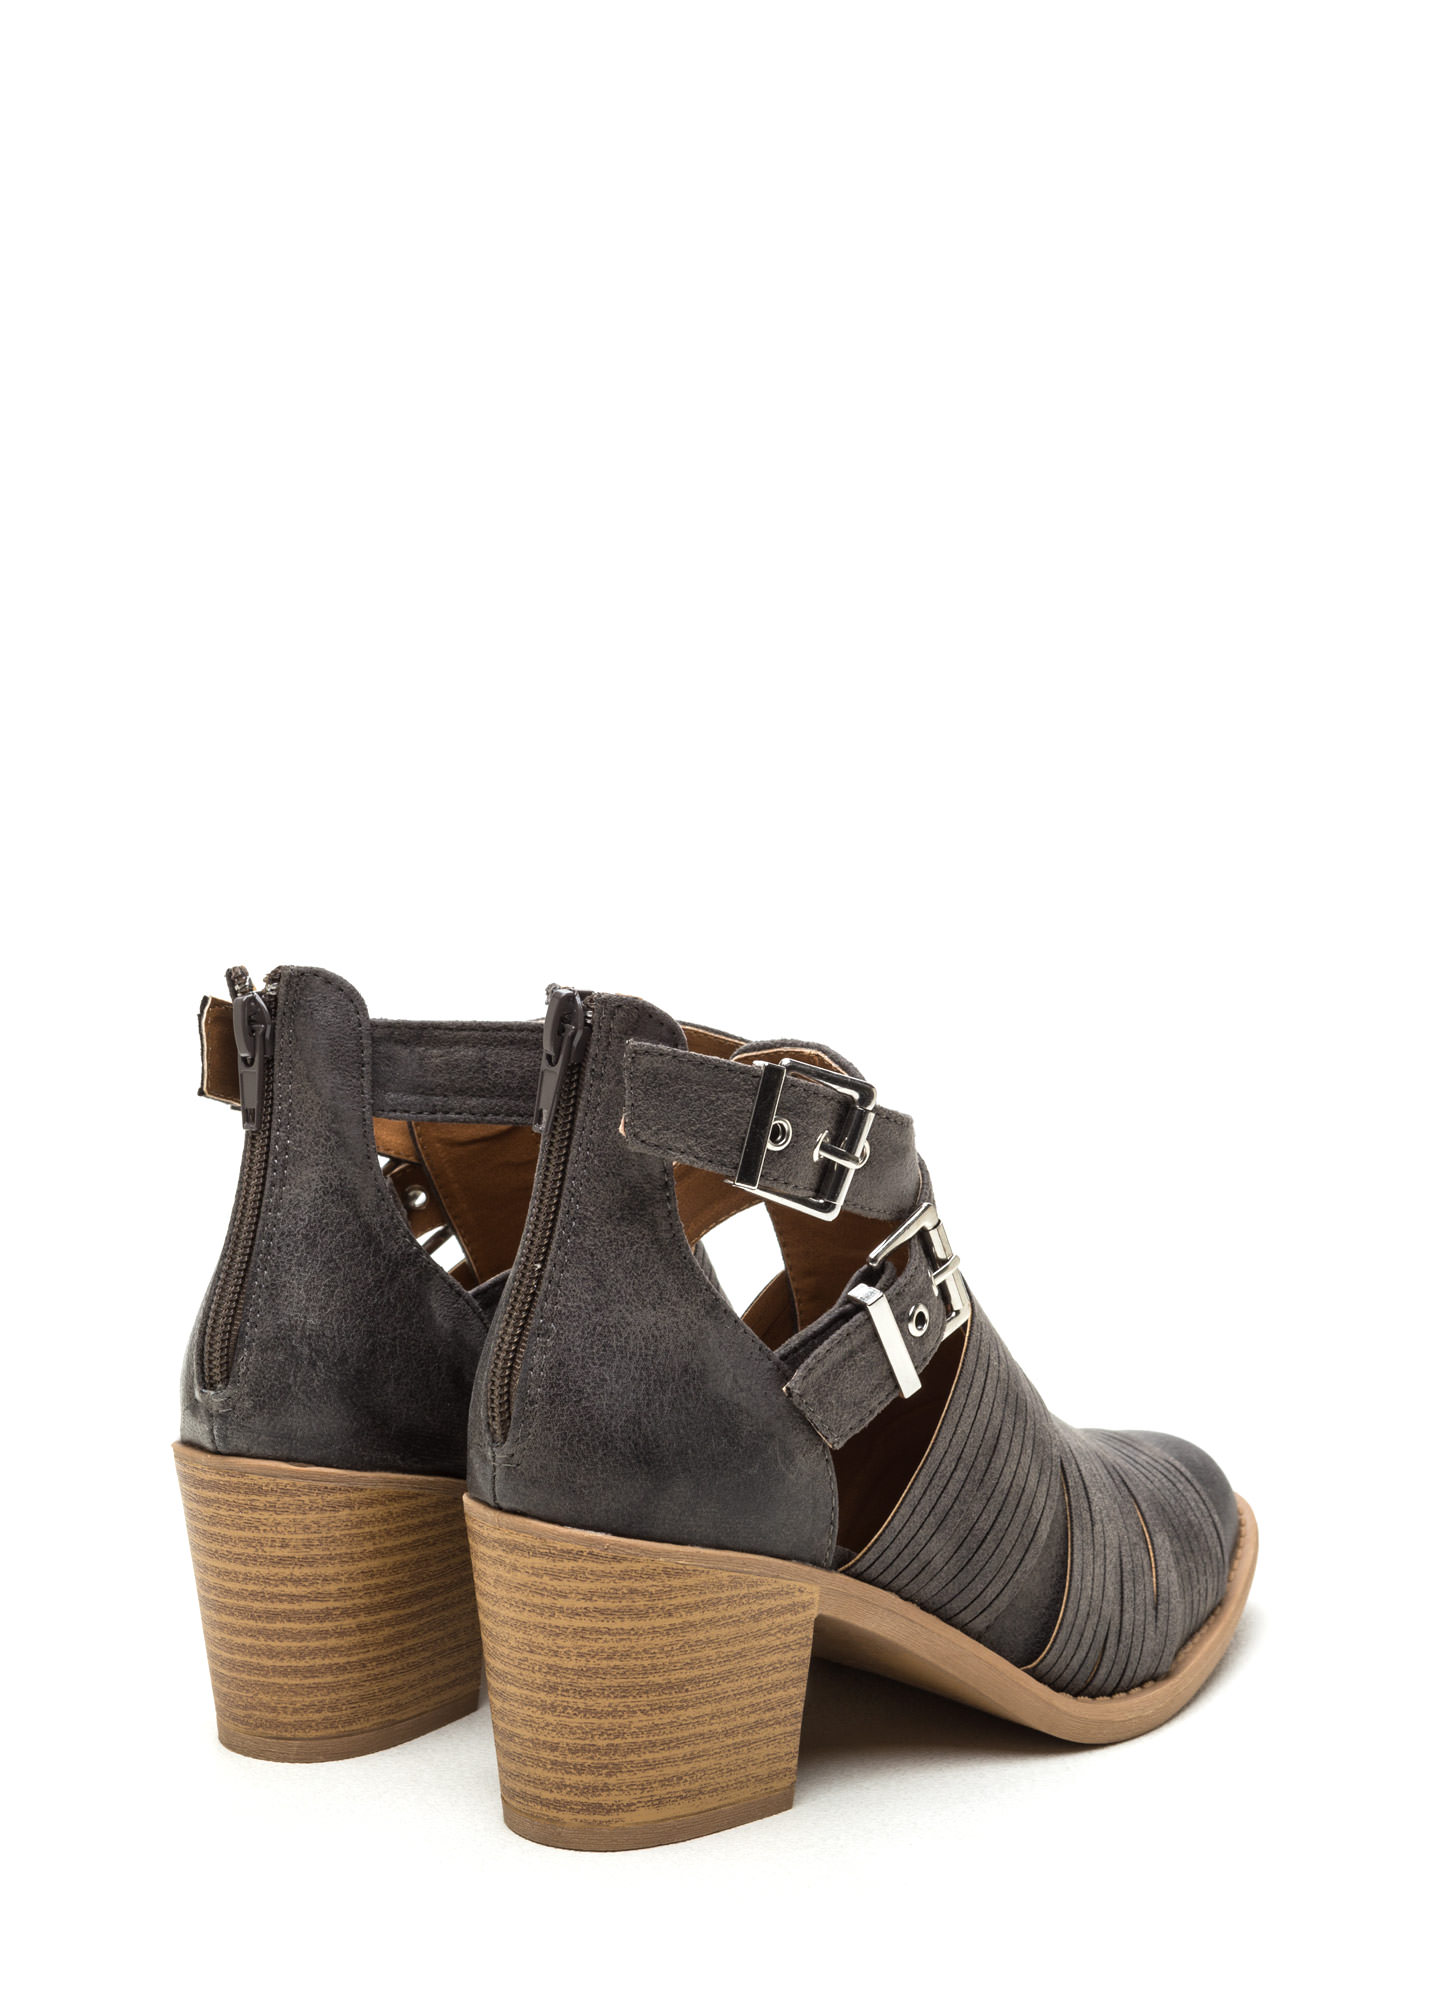 Make The Cut-Out Booties GREY (Final Sale)